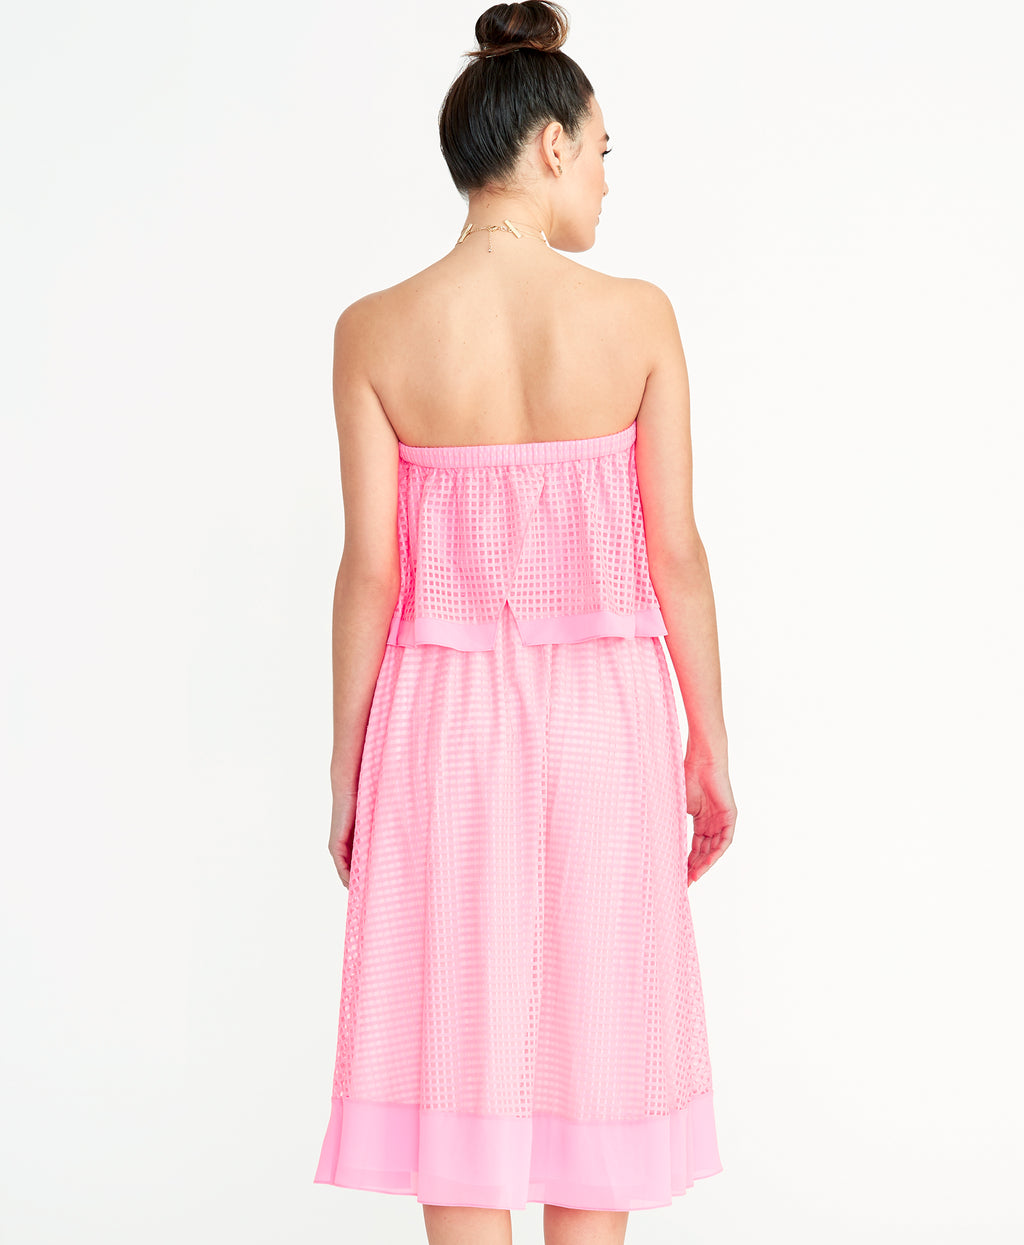 Ilia Grid Skirt | Neon Flamingo